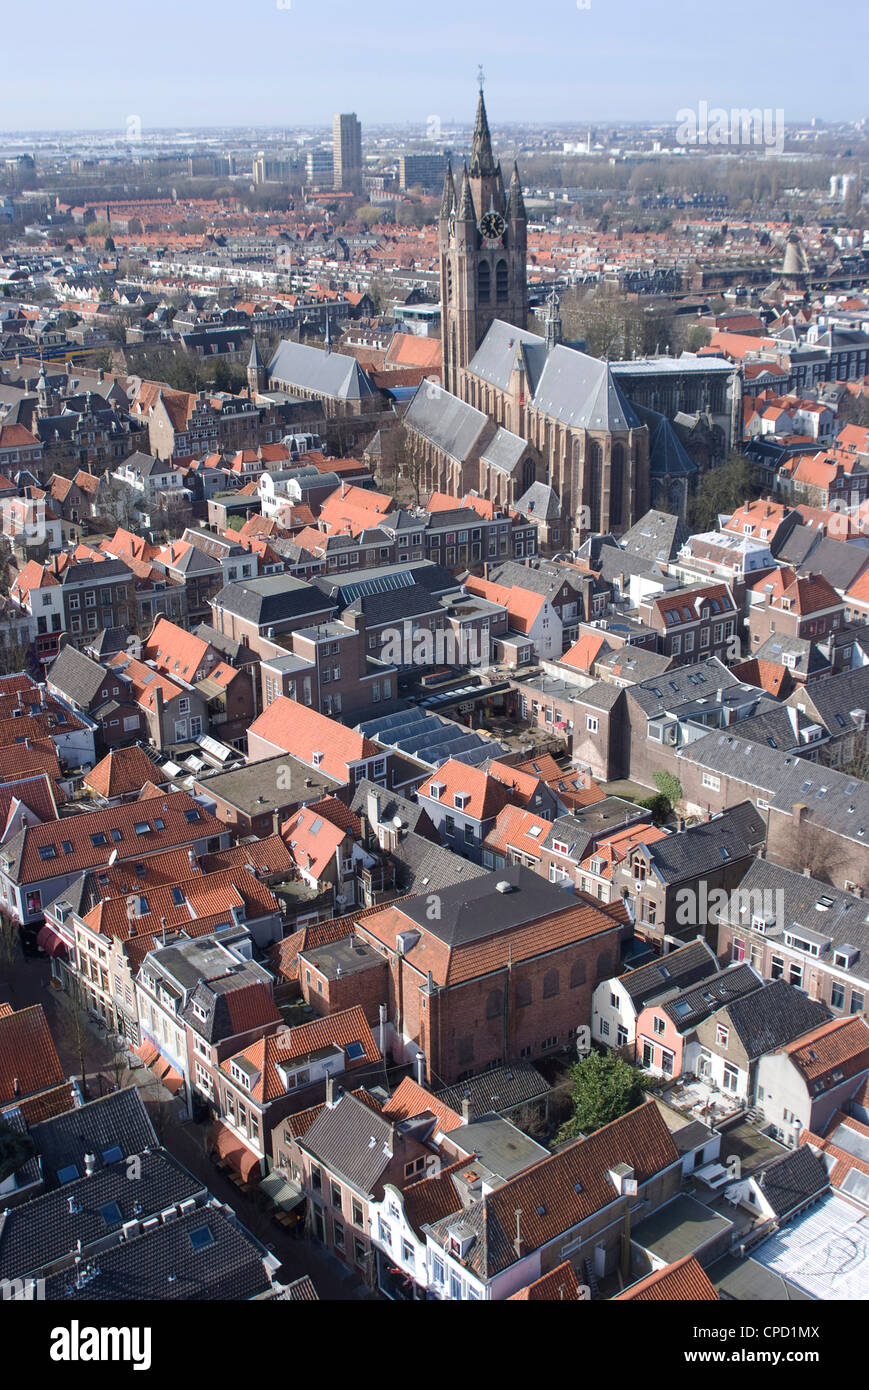 View over the city and the Oude Kerk (Old Church) from the viewing platform of the Nieuwe Kerk (New Church), Delft, - Stock Image